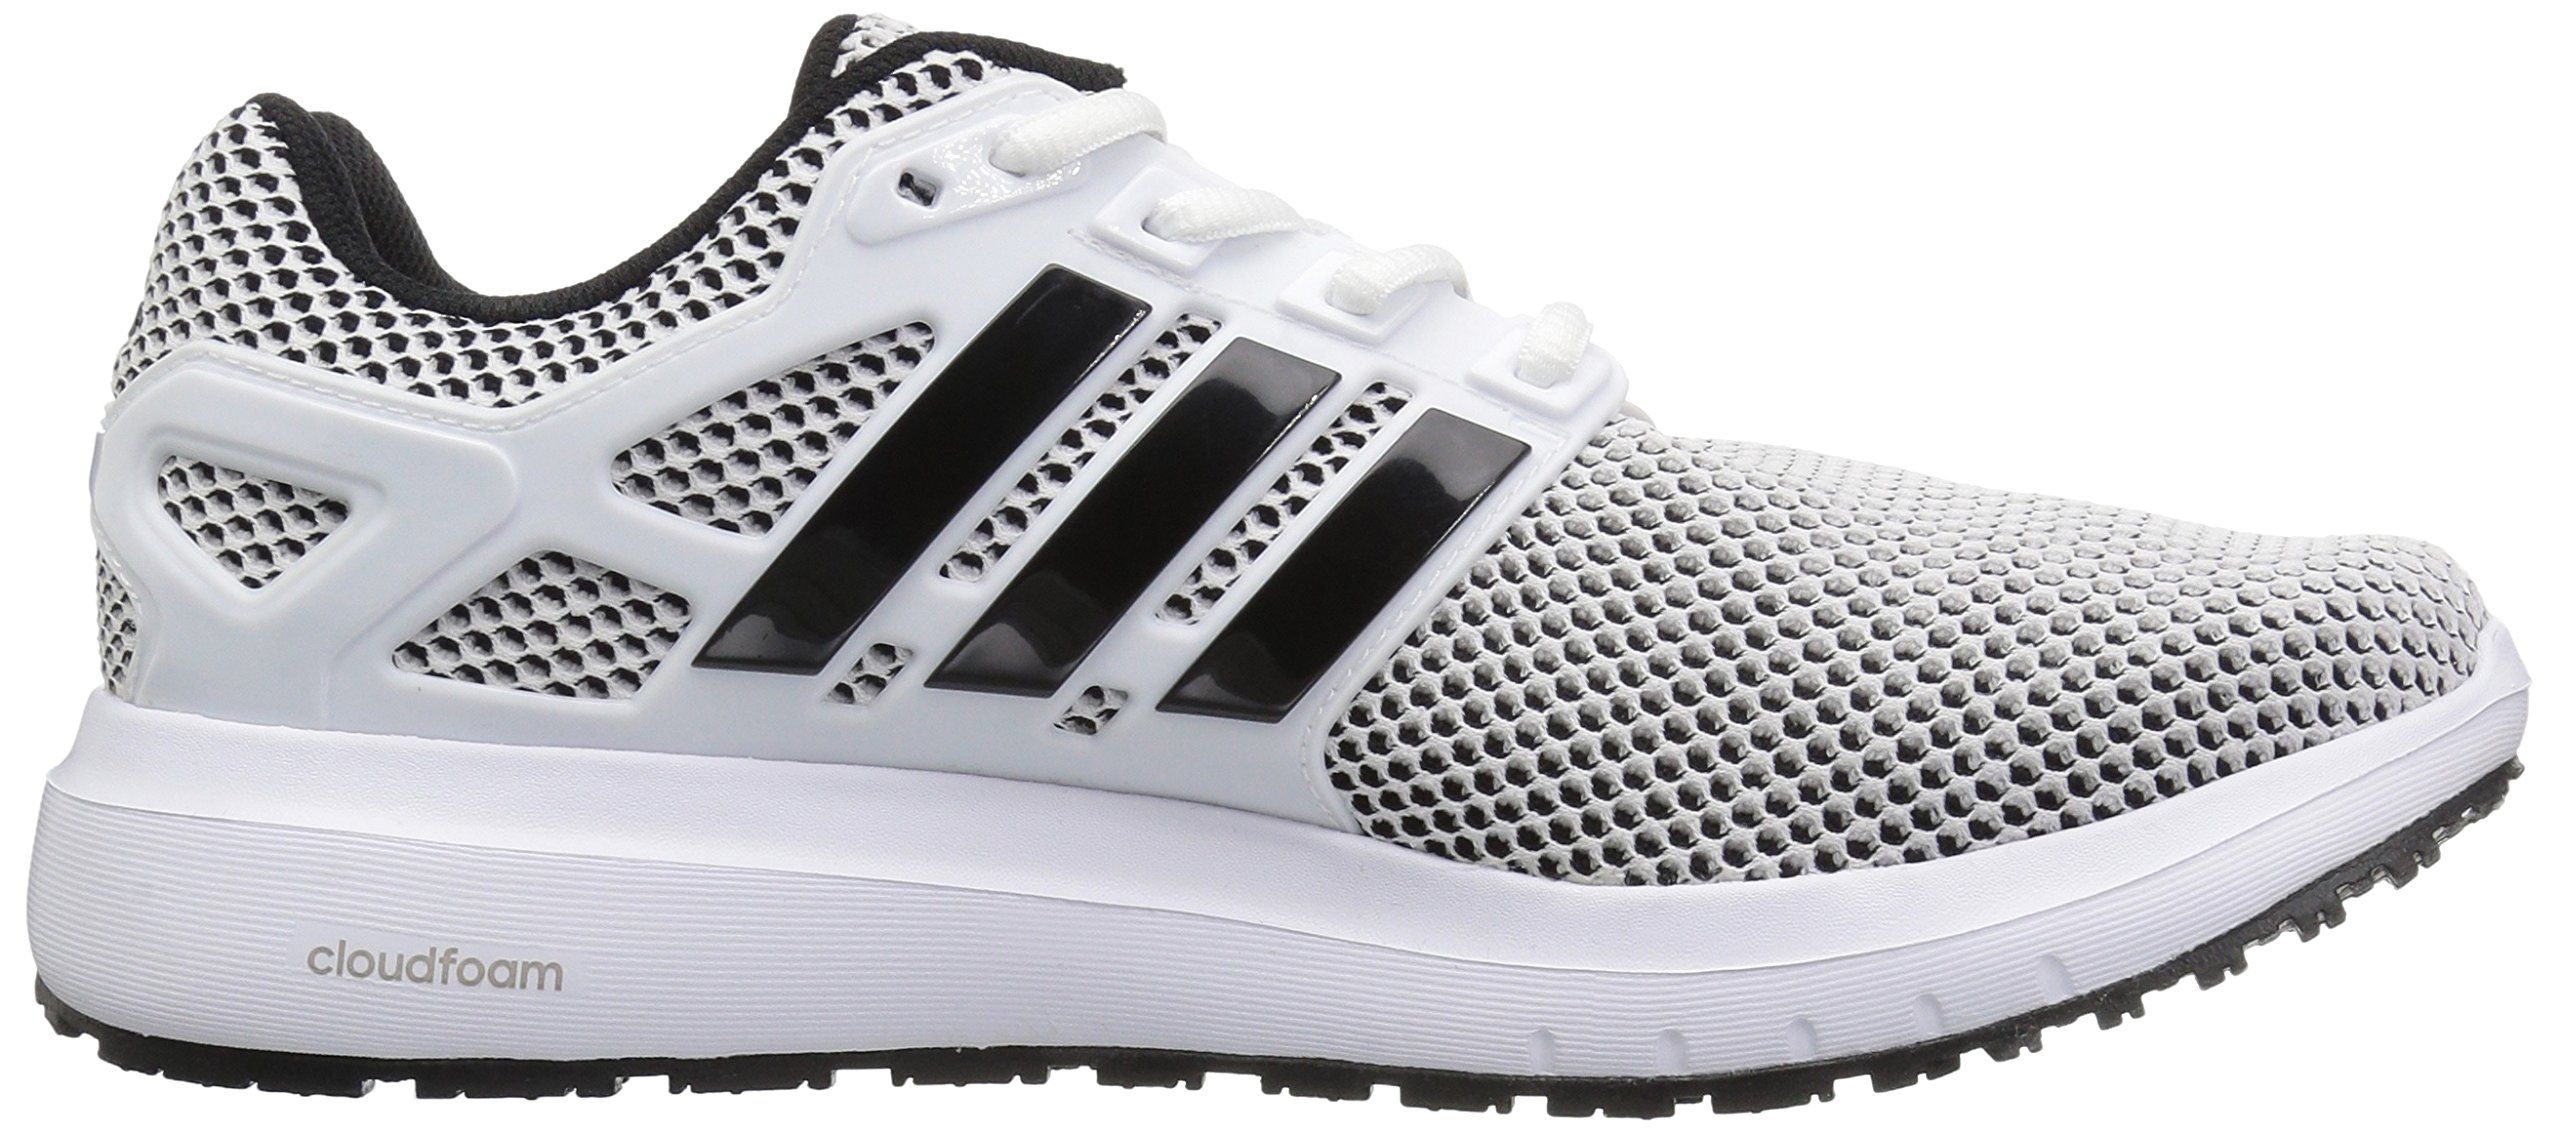 Adidas Performance hombre  Energy Cloud m zapatillas Blanco / negro